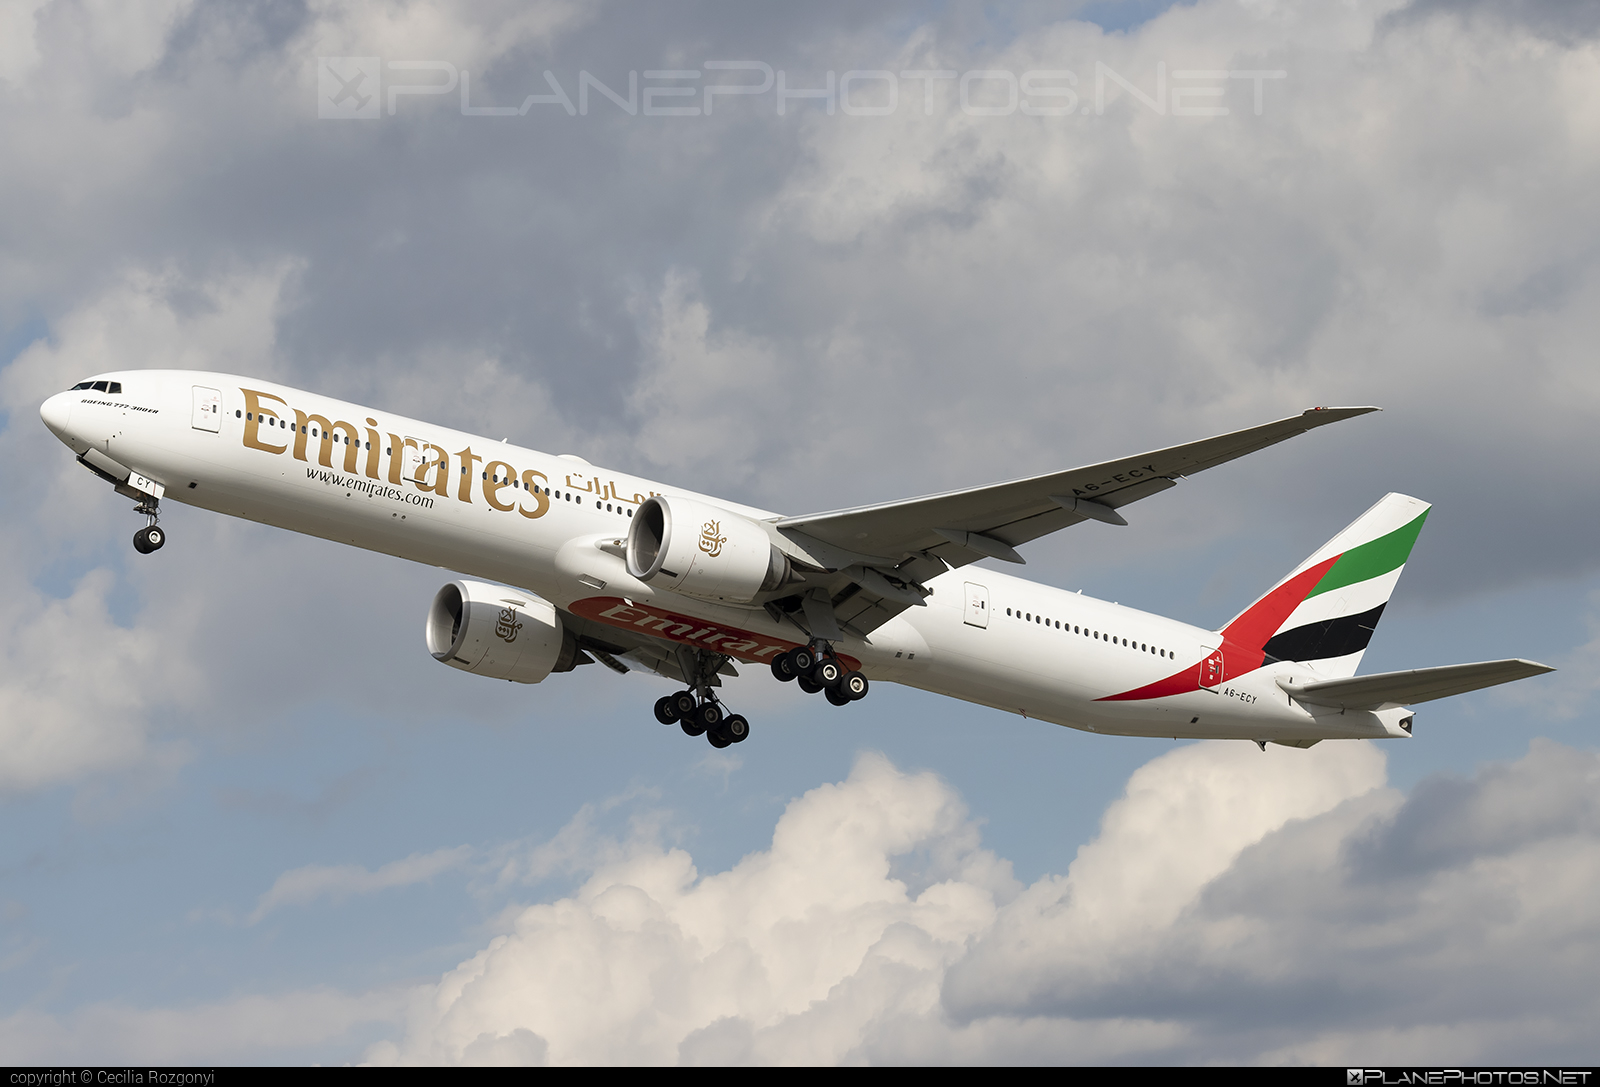 Emirates Boeing 777-300ER - A6-ECY #b777 #b777er #boeing #boeing777 #emirates #tripleseven